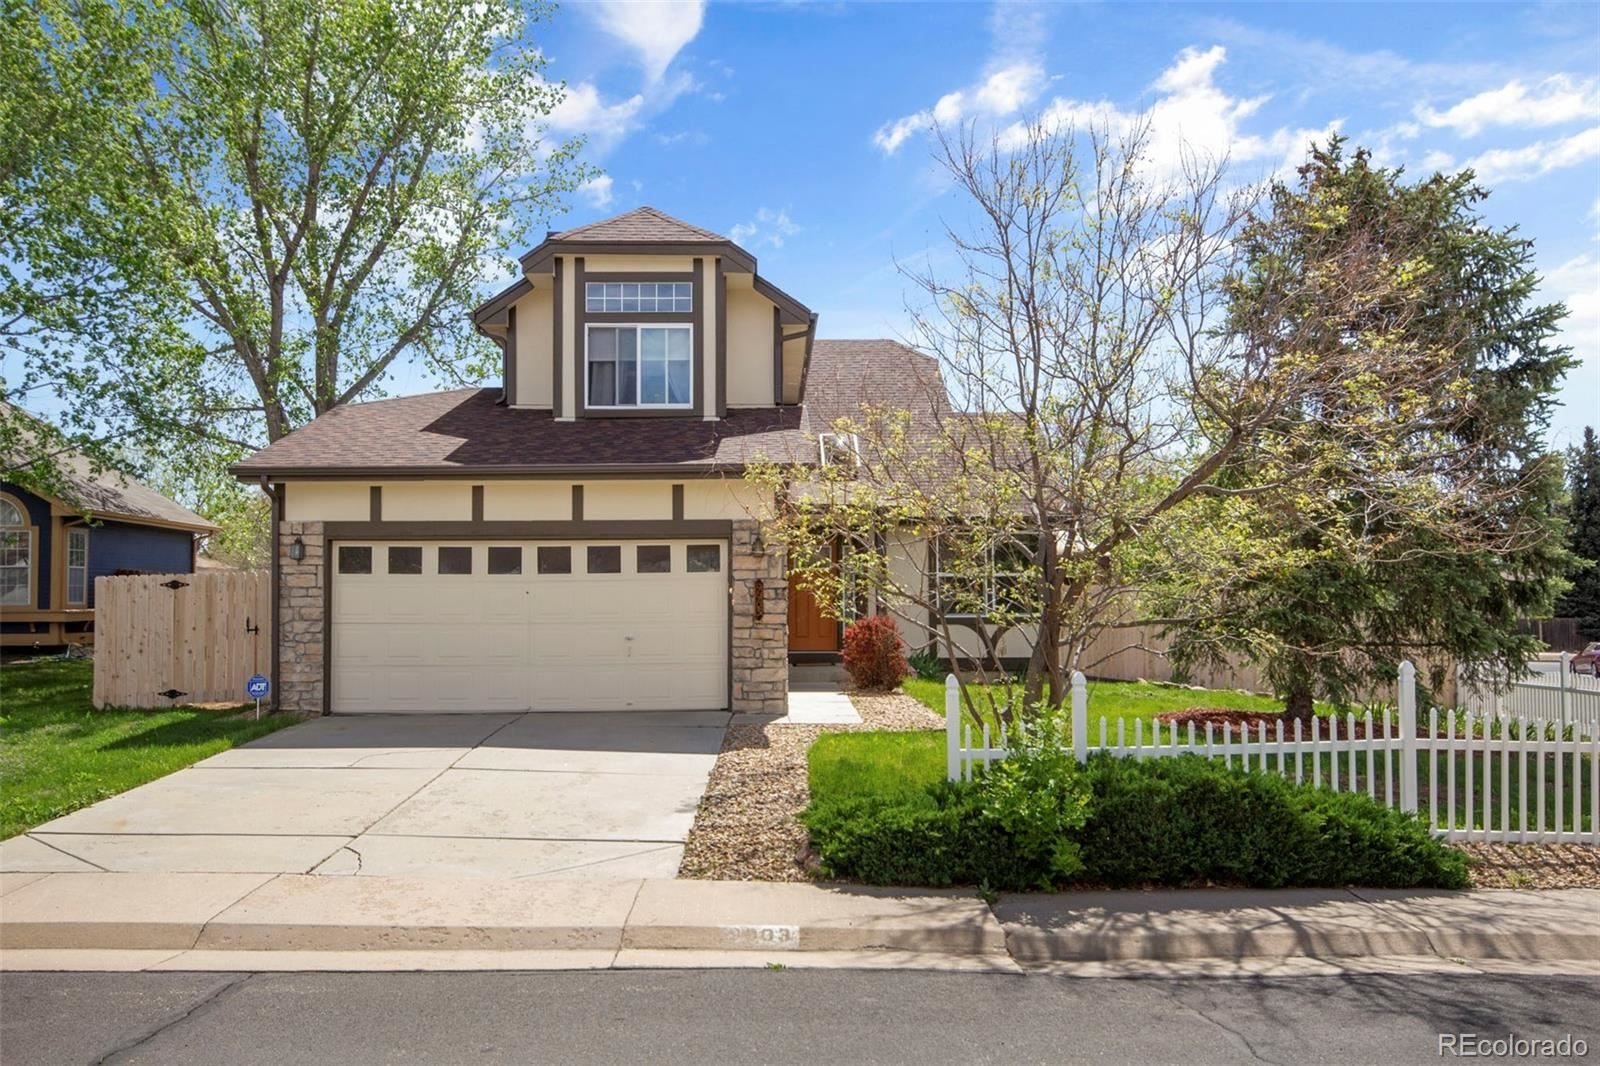 9903 W 106th Avenue, Westminster, CO 80021 - #: 7933662